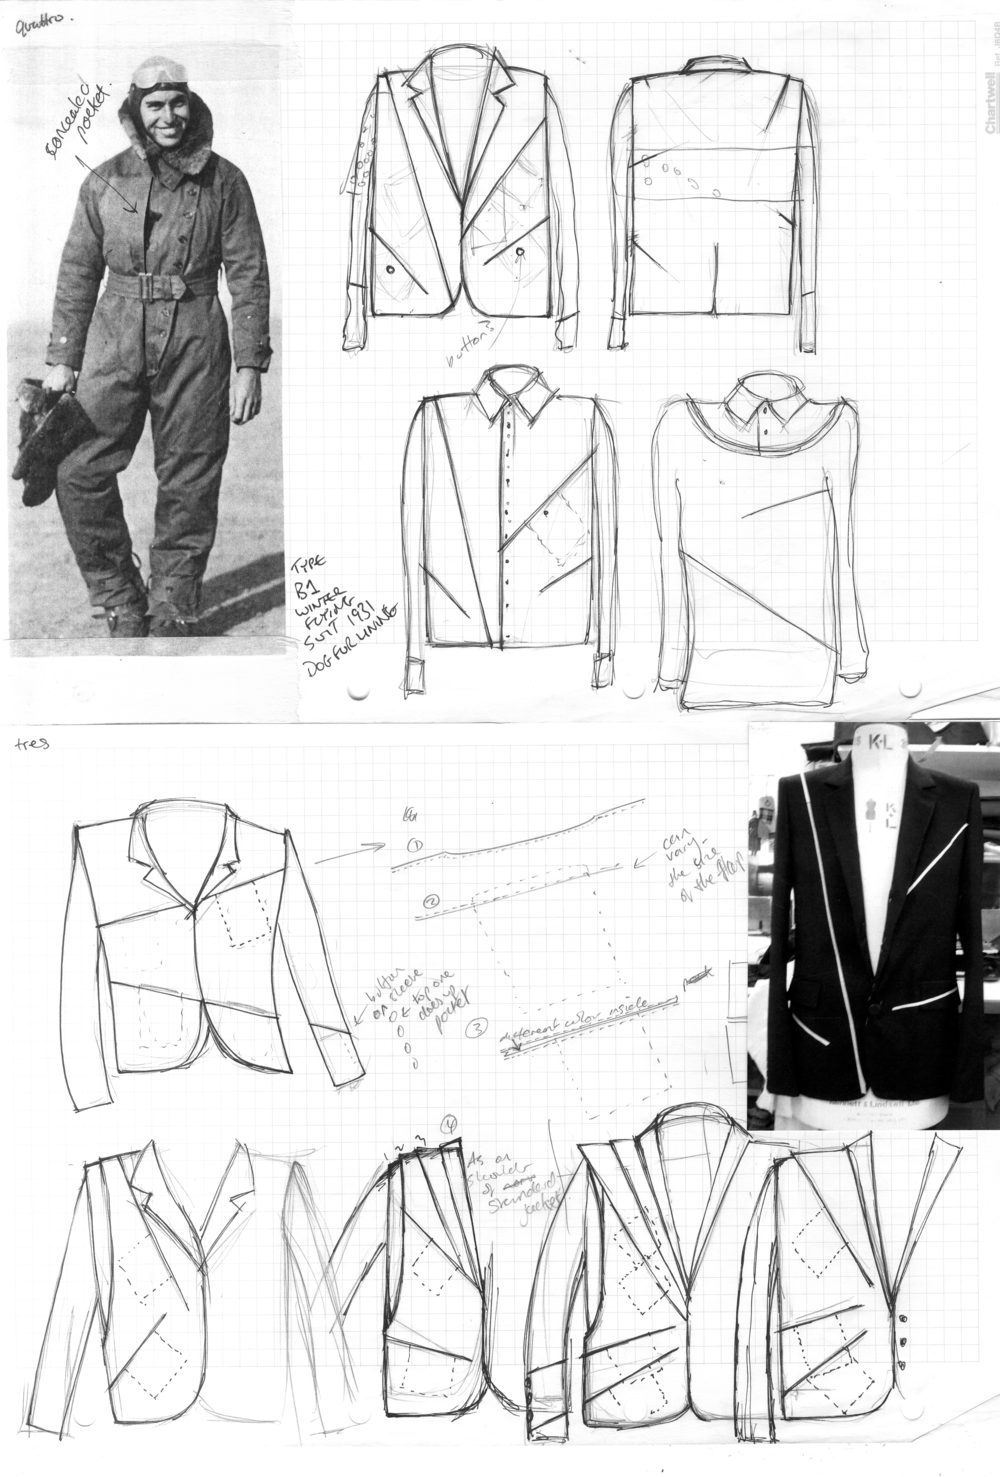 brioni sketches.png